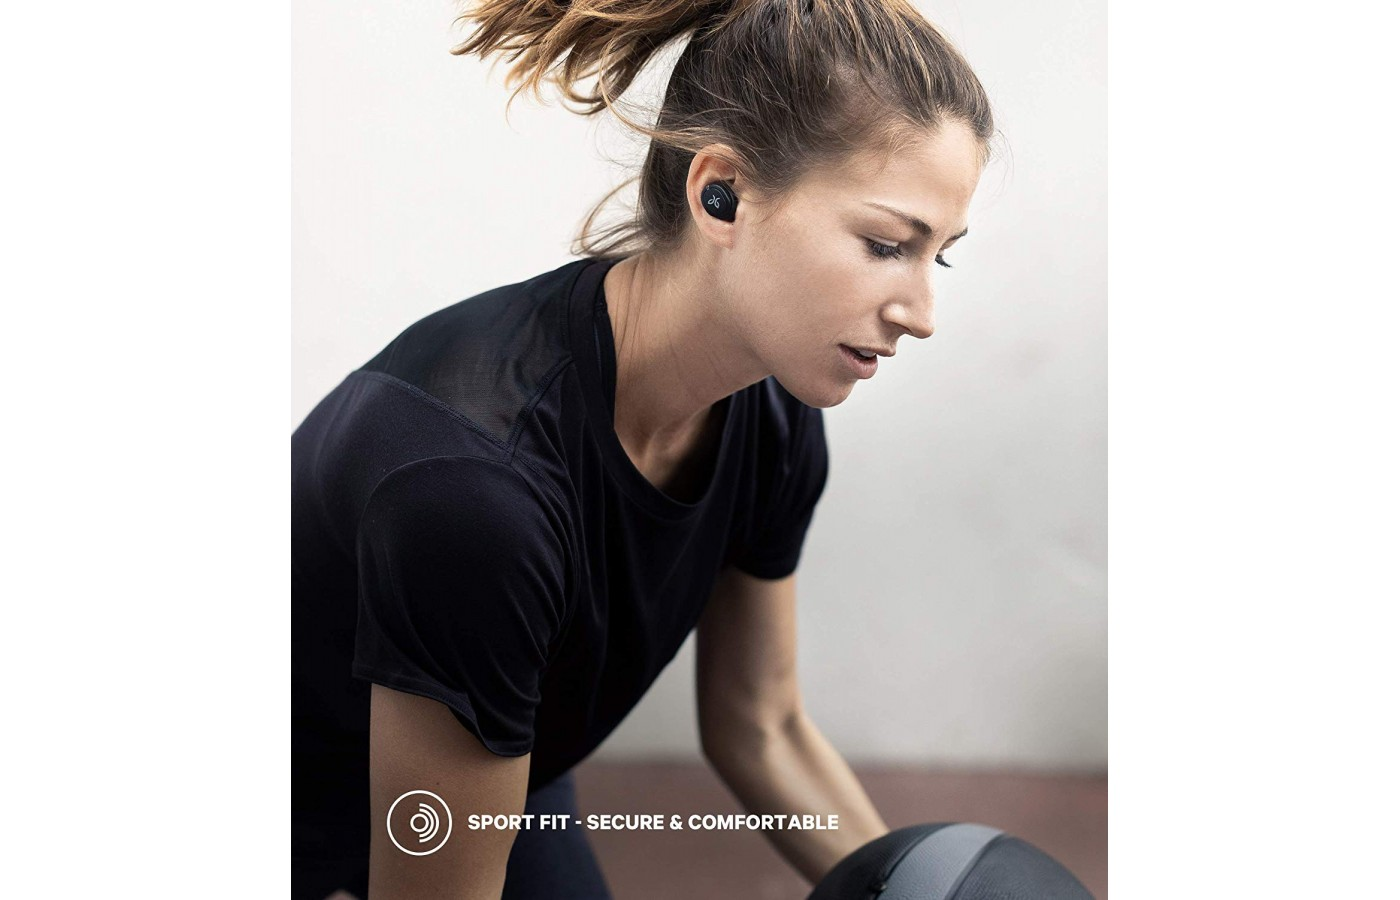 The headphones feature a tight fitting seal and secure fit that prevent outside sound from interrupting tunes.